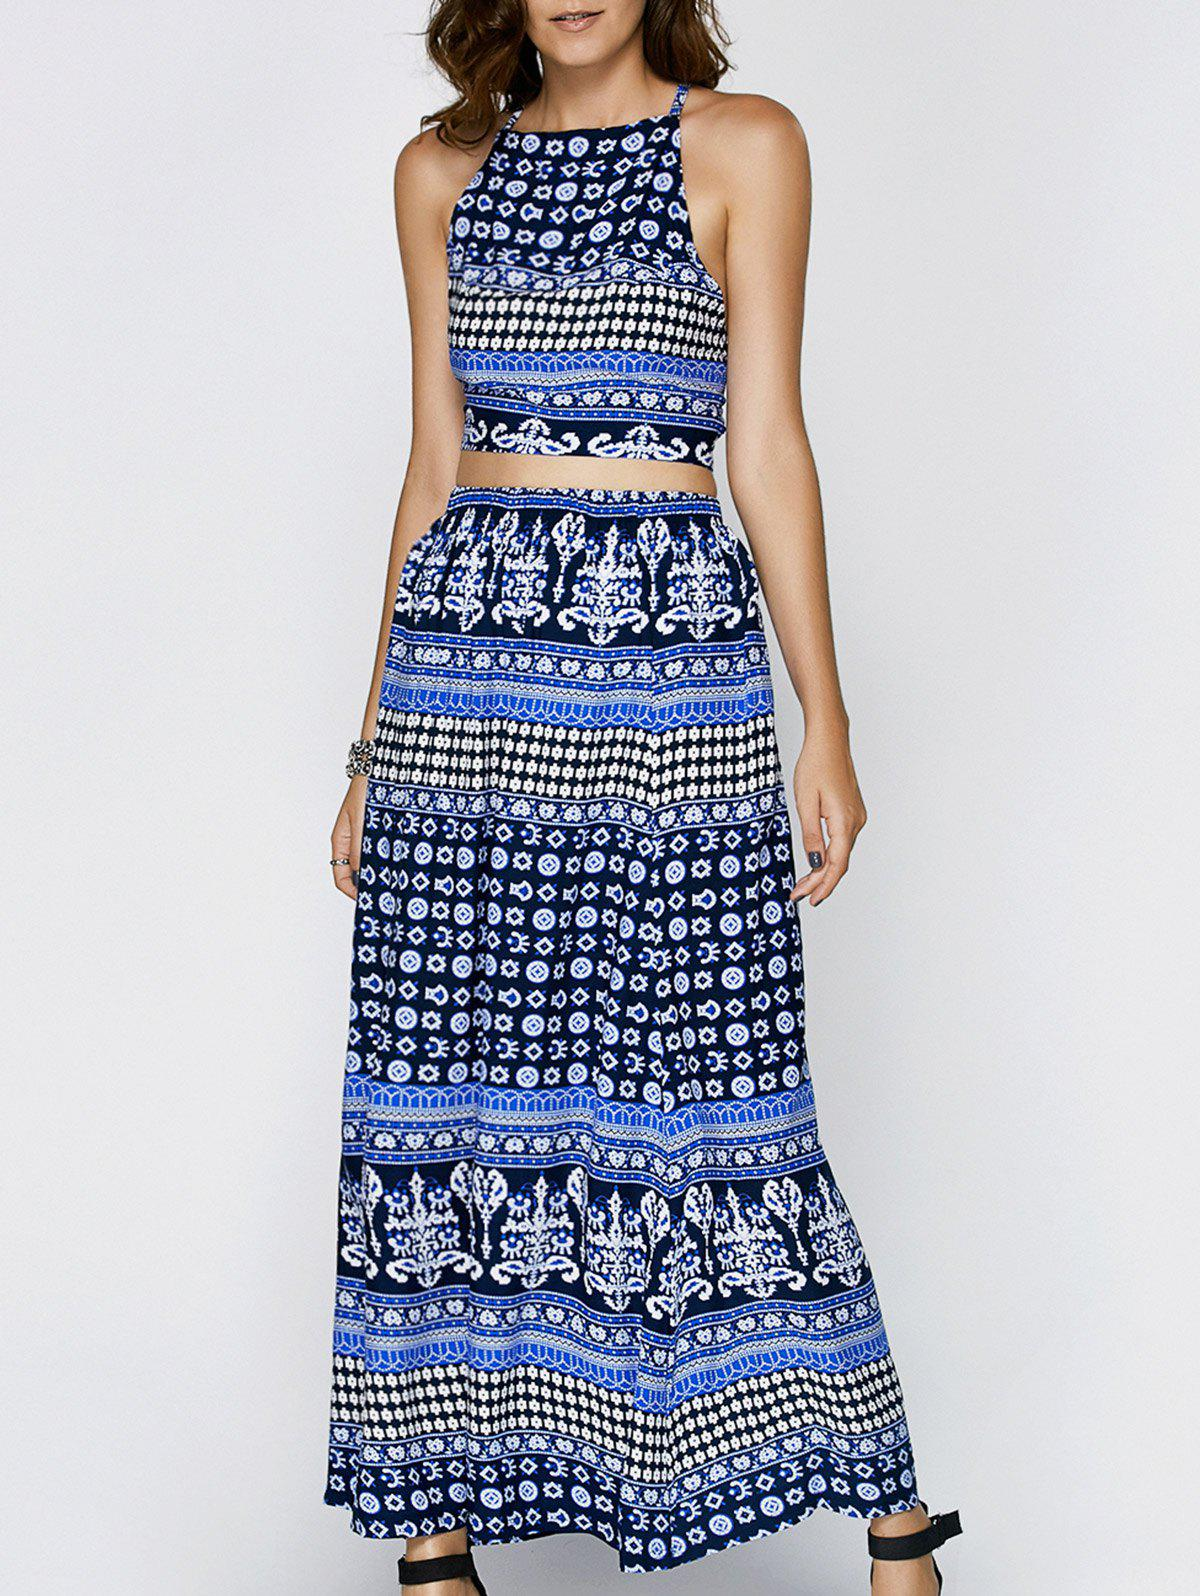 Stylish Women's Printed Backless Top + Maxi Skirt Twinset - BLUE 2XL